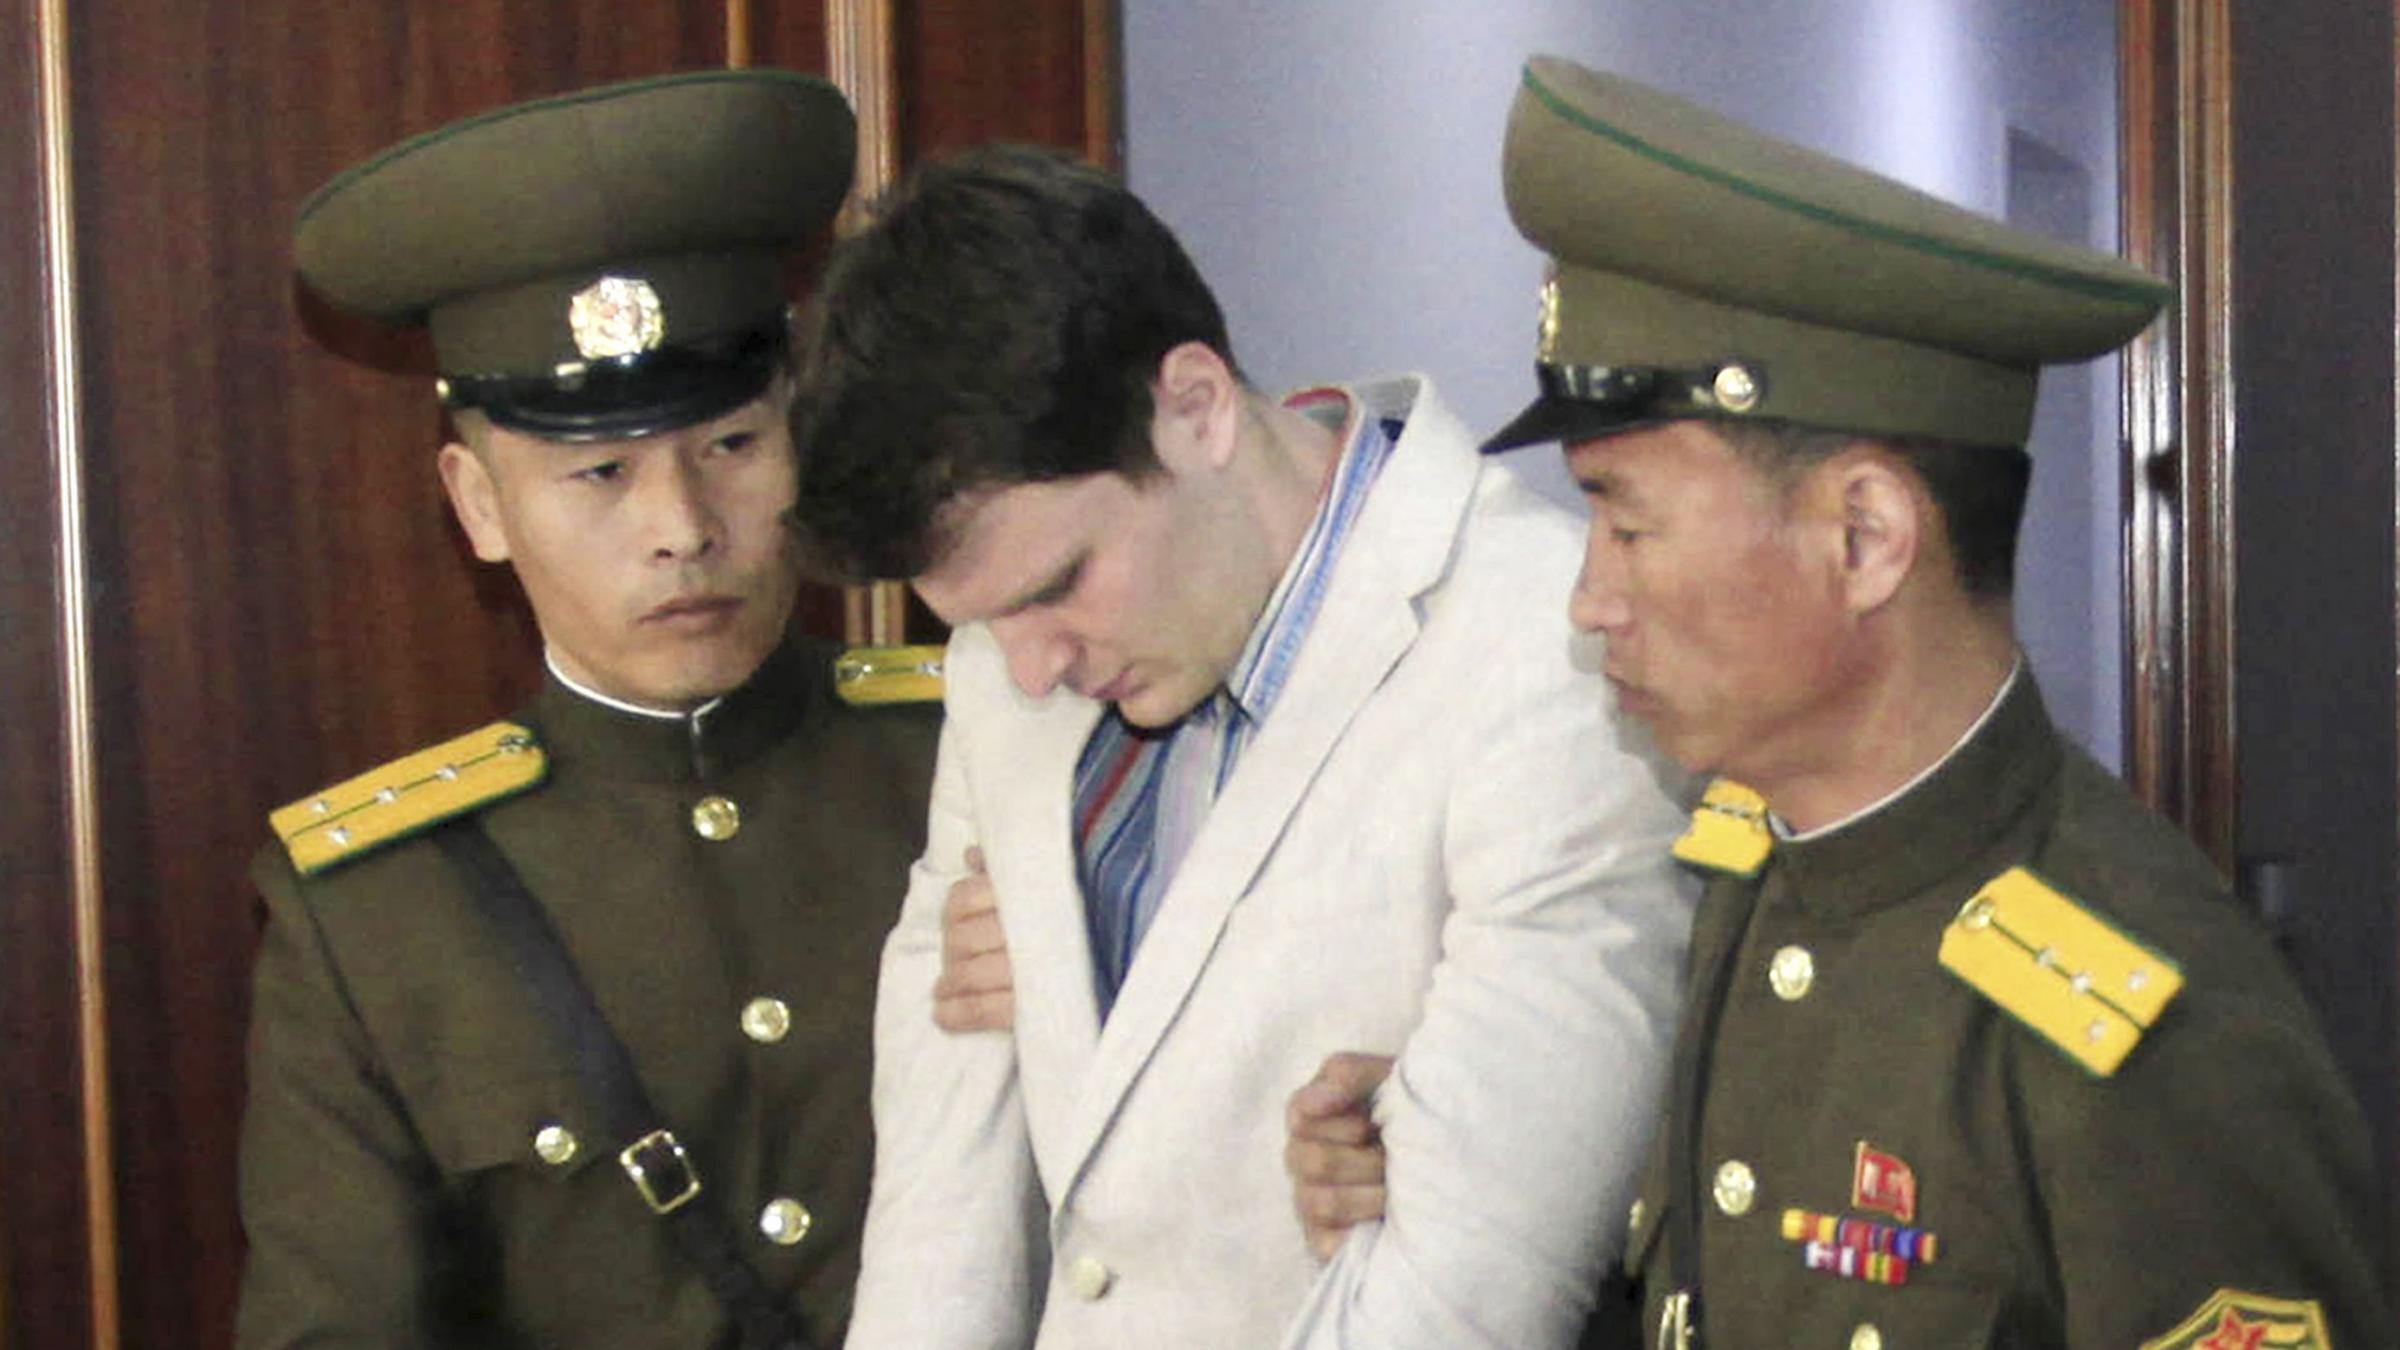 Father says Otto Warmbier 'brutalized and terrorized' in N. Korea